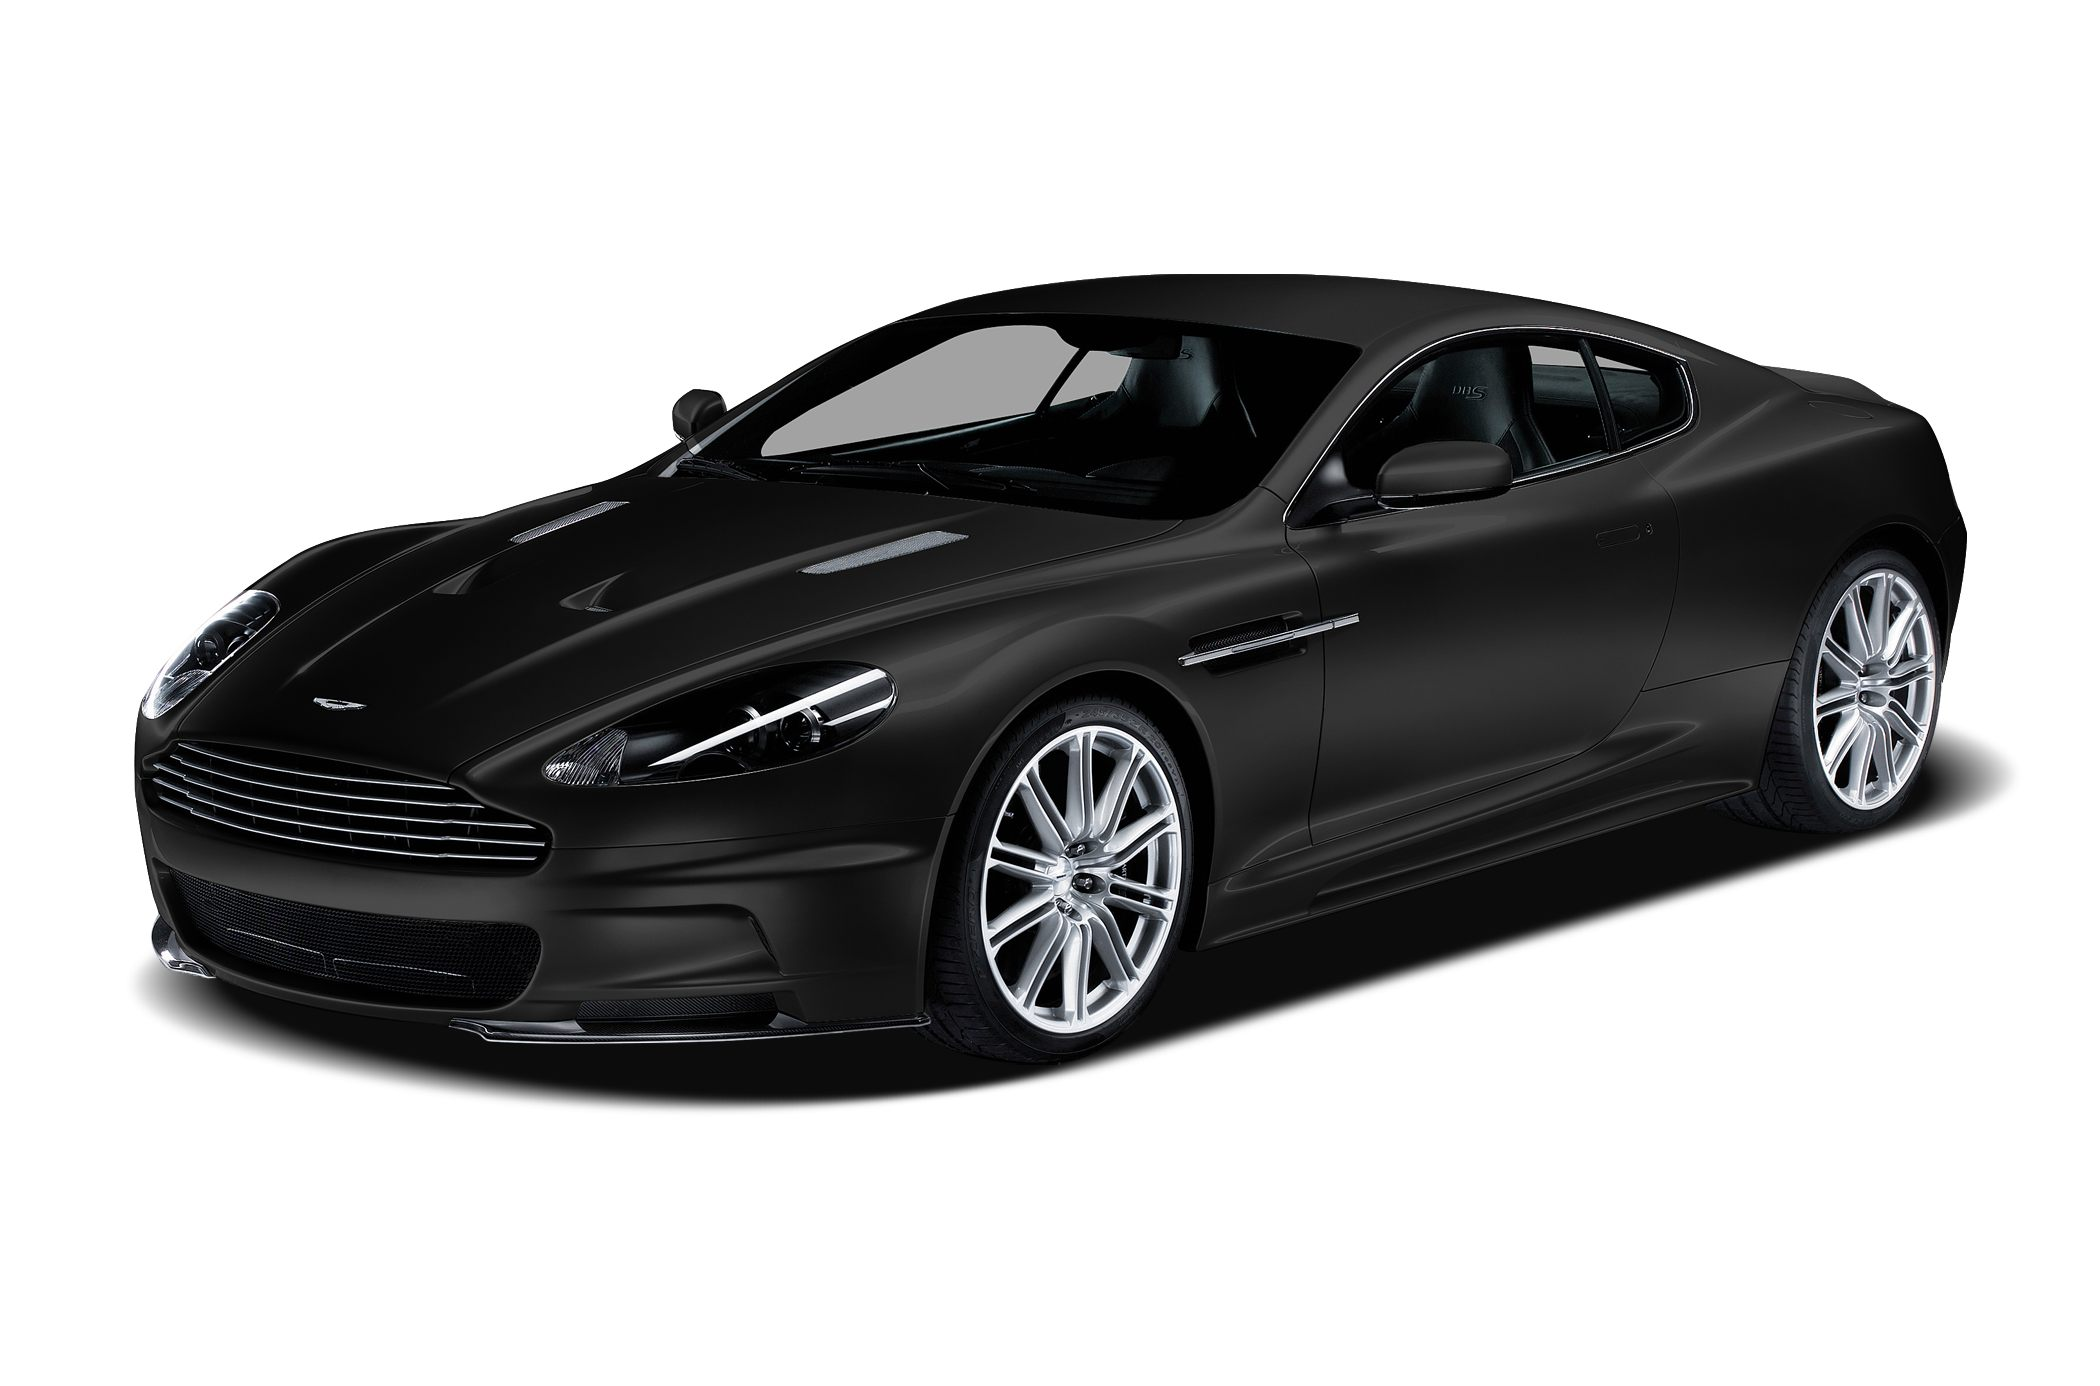 2009 Aston Martin DBS Pricing and Specs